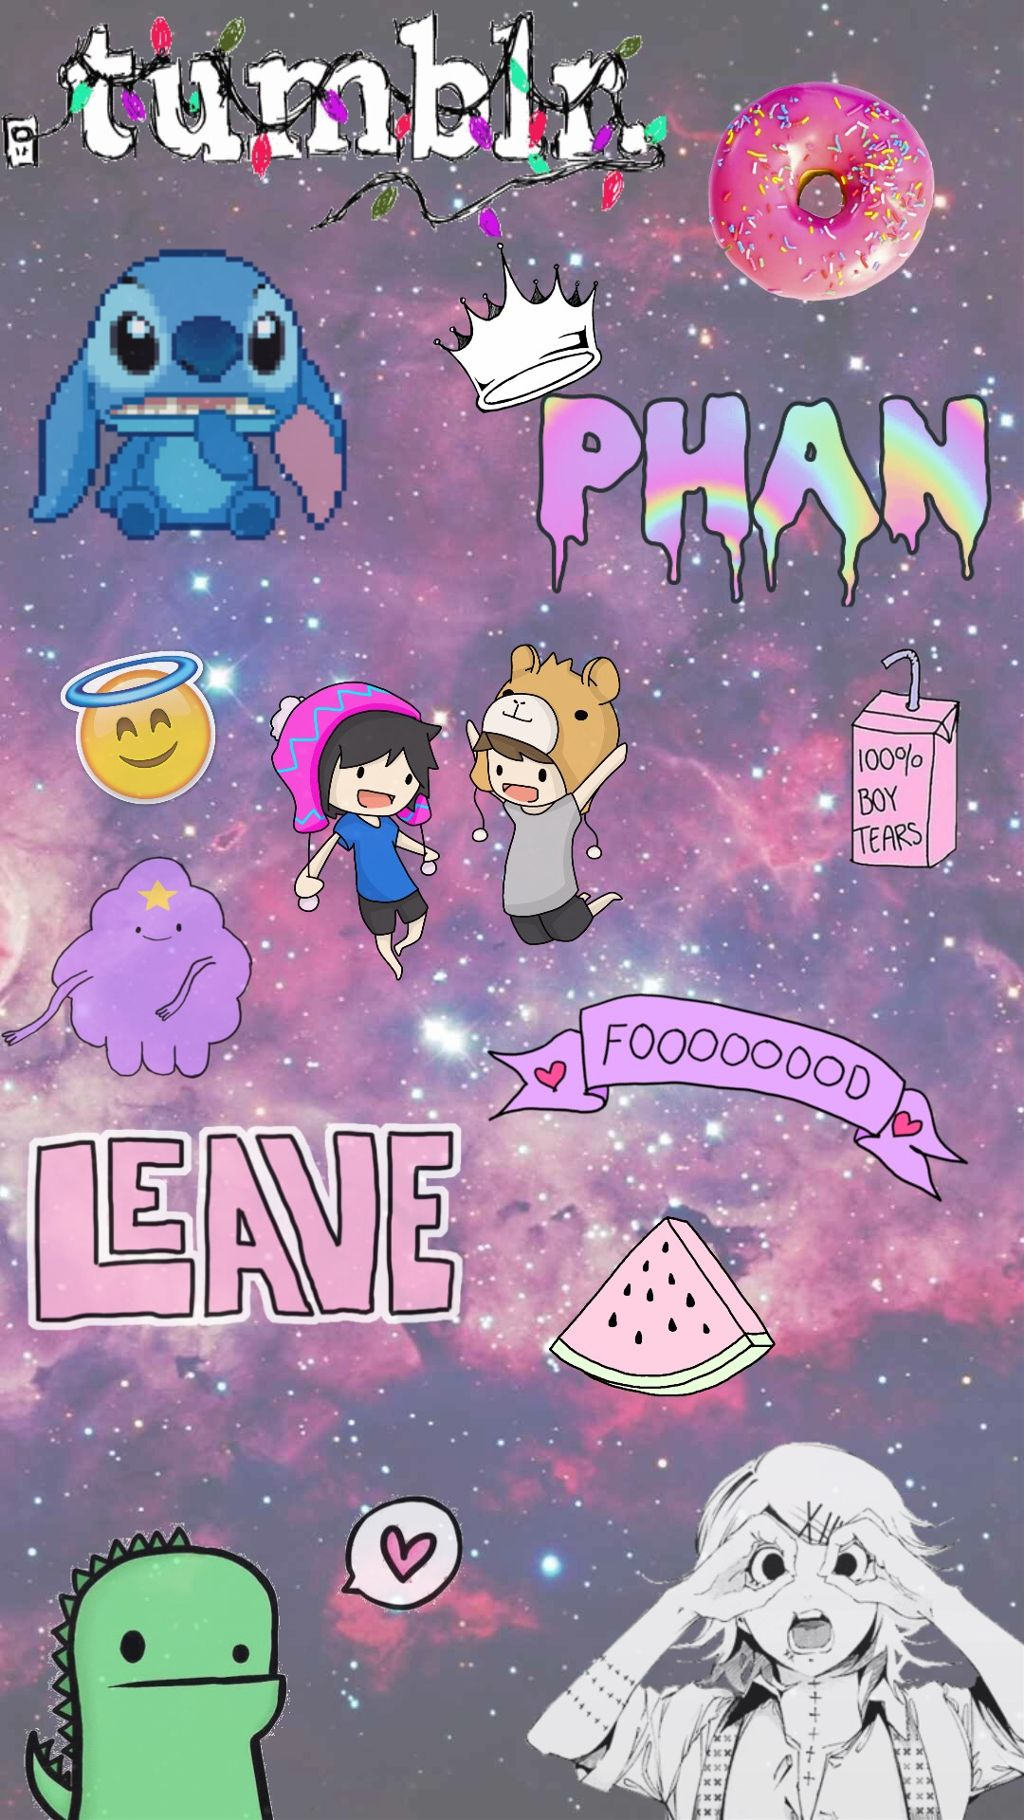 Yay New Tumblr Wallpaper Any Requests For Edits